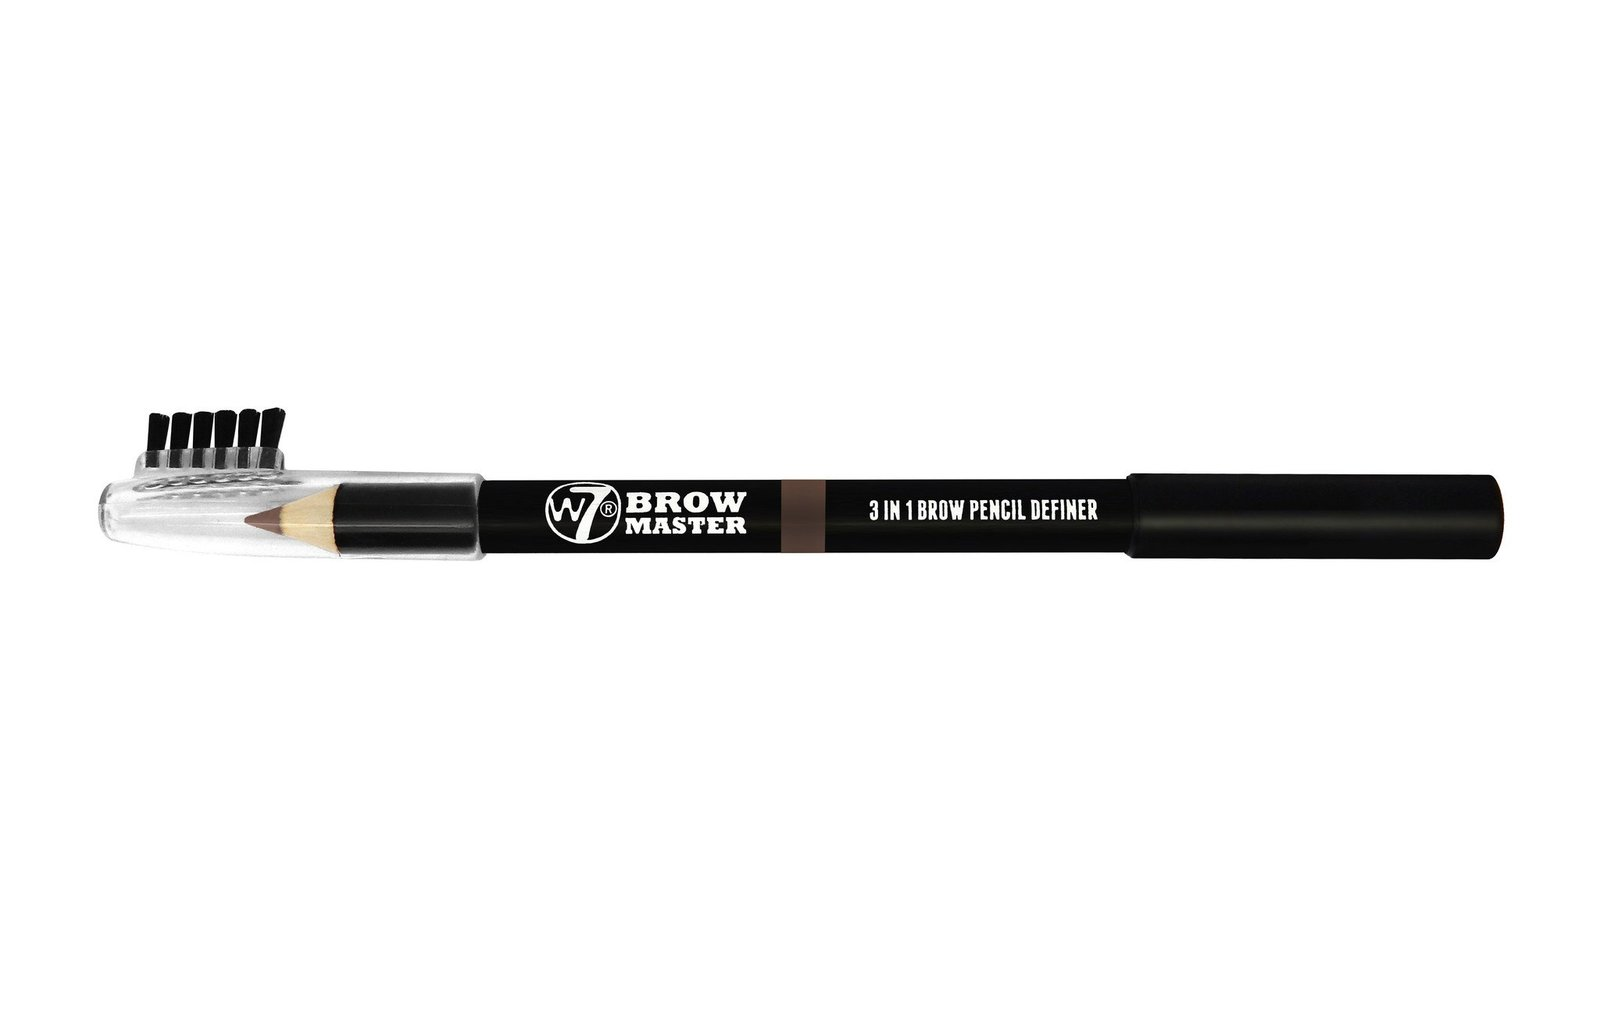 W7 Brow Master 3 in 1 Brow Pencil Definer (Brown) image